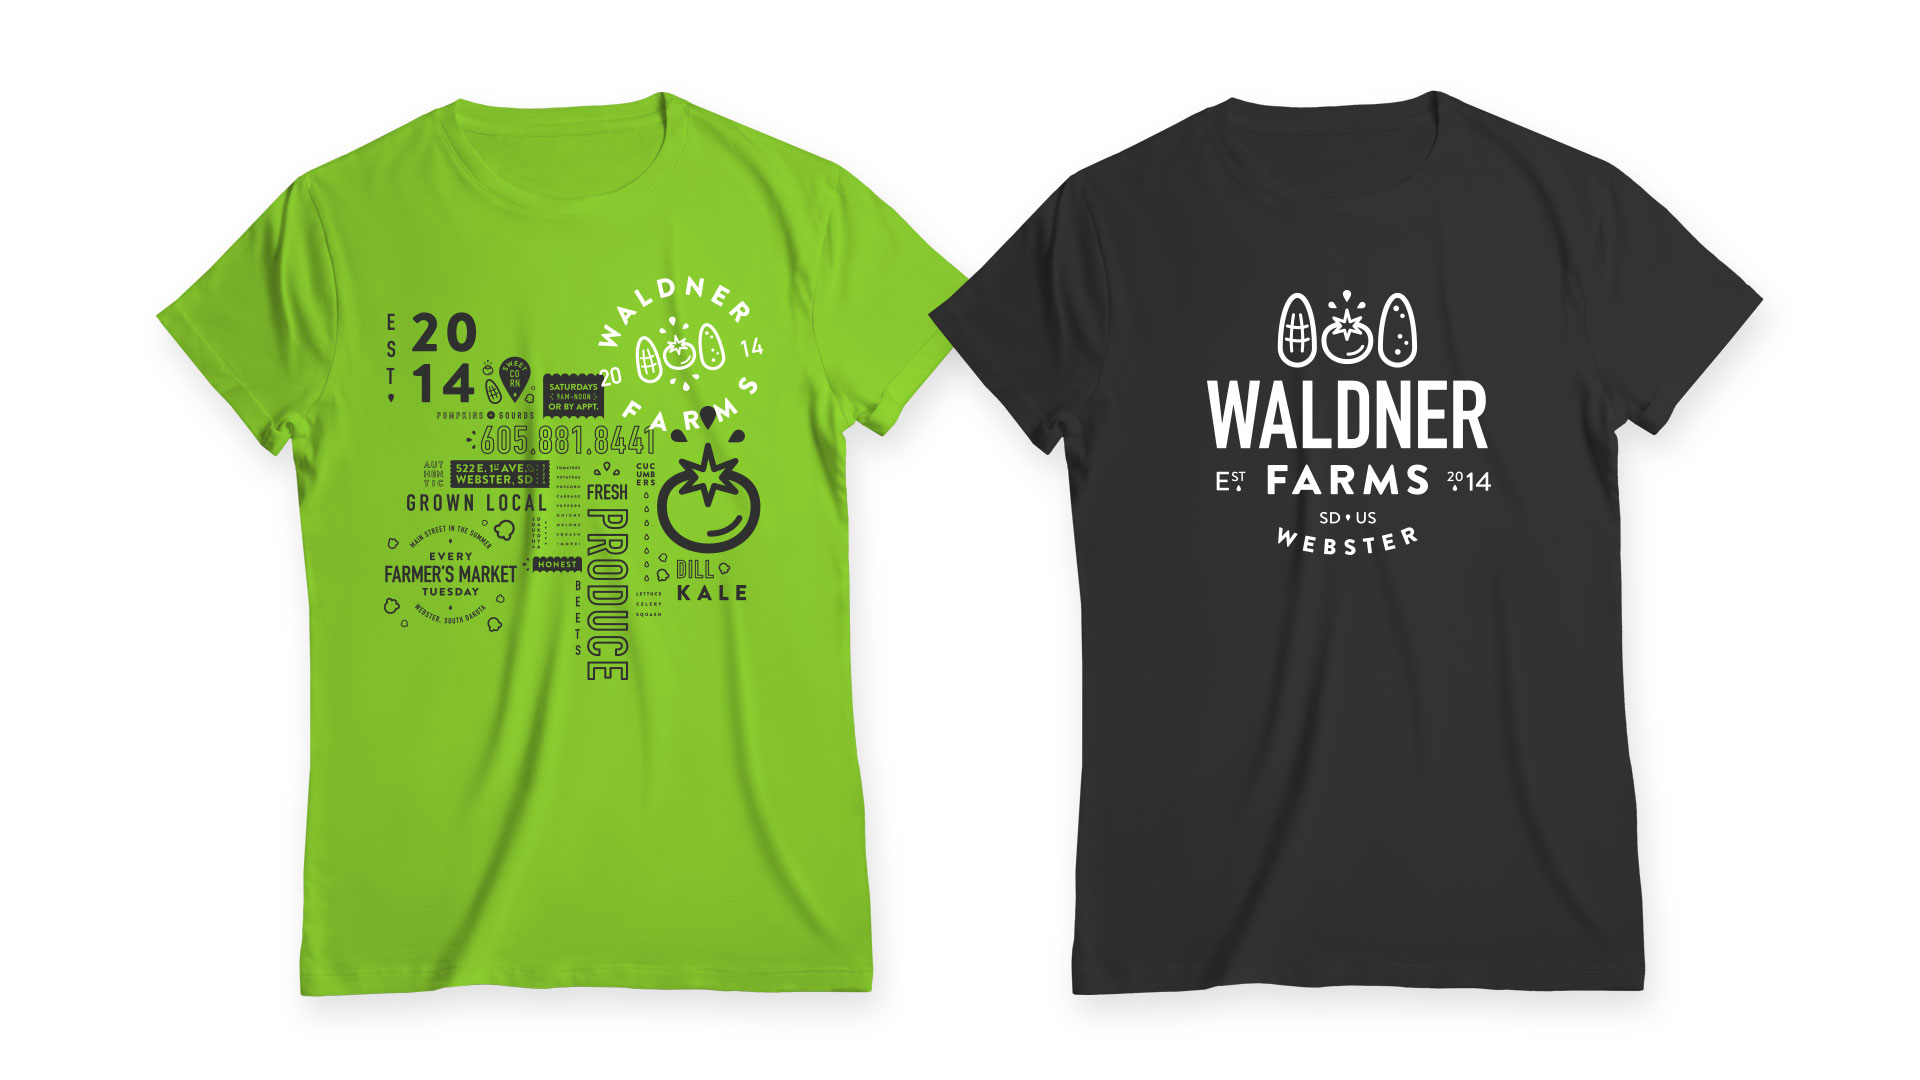 waldner-farms-shirts